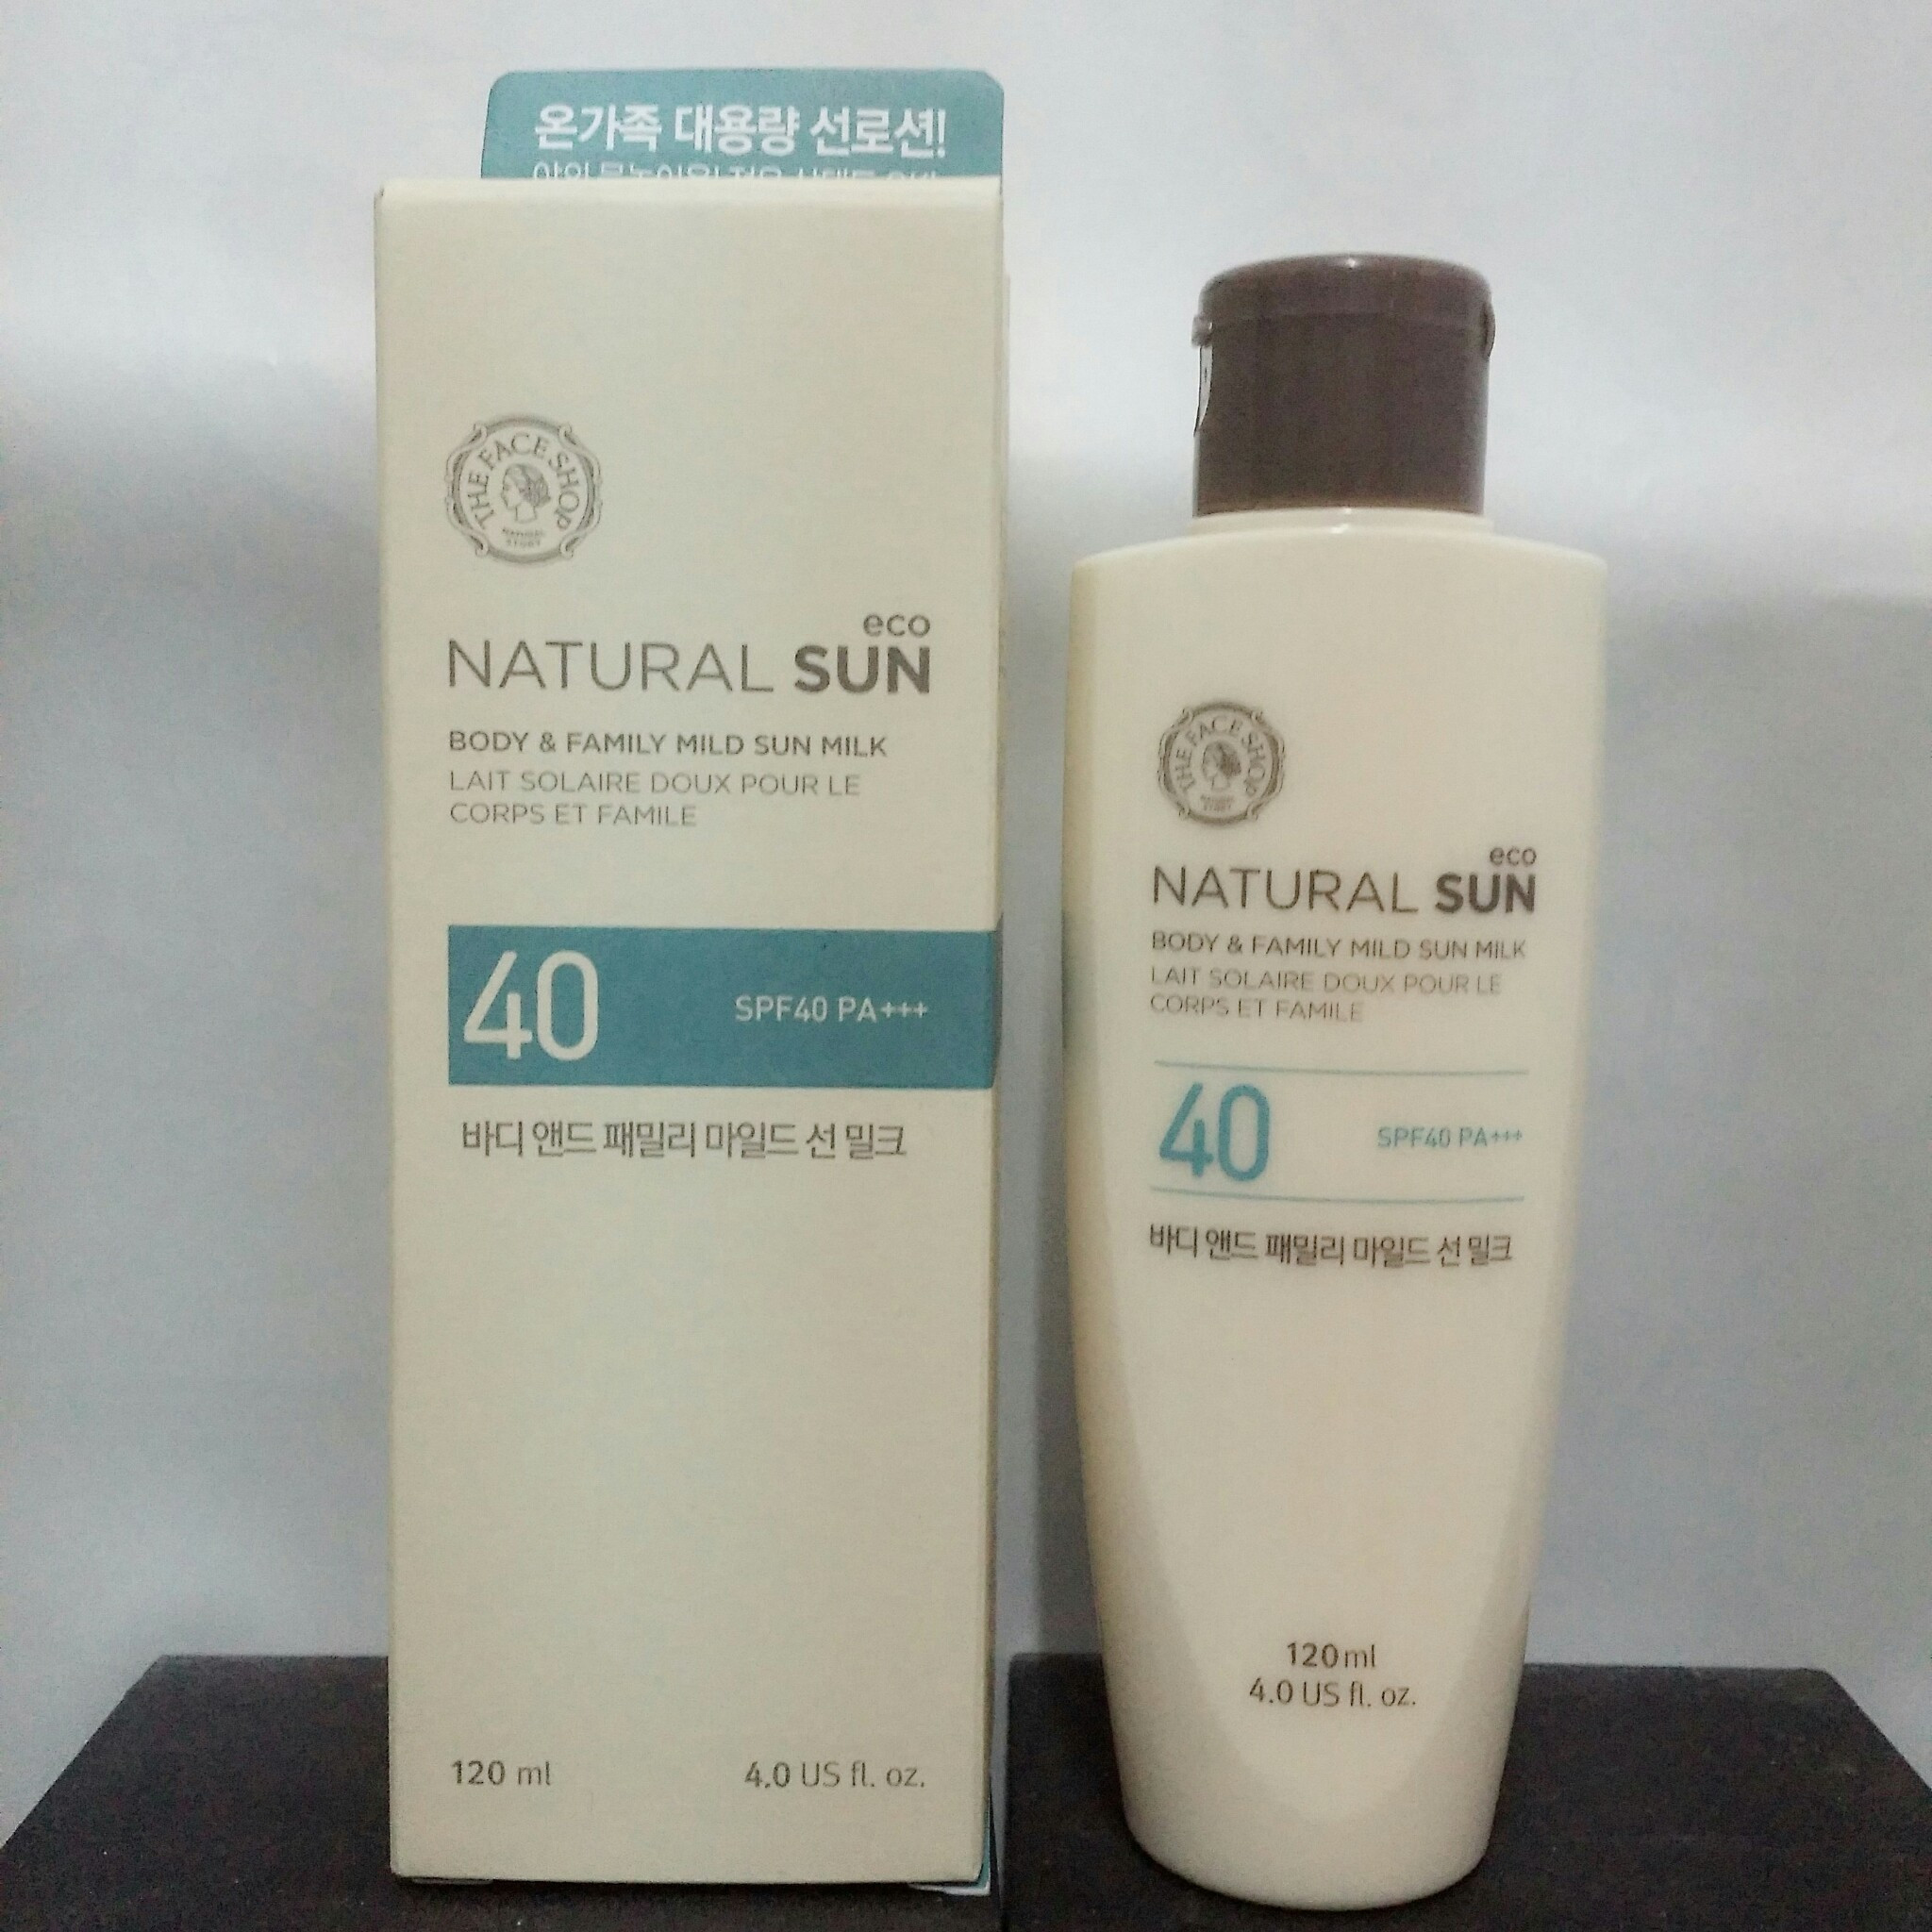 Natural Sun Eco Body & Family Mild Sun Milk